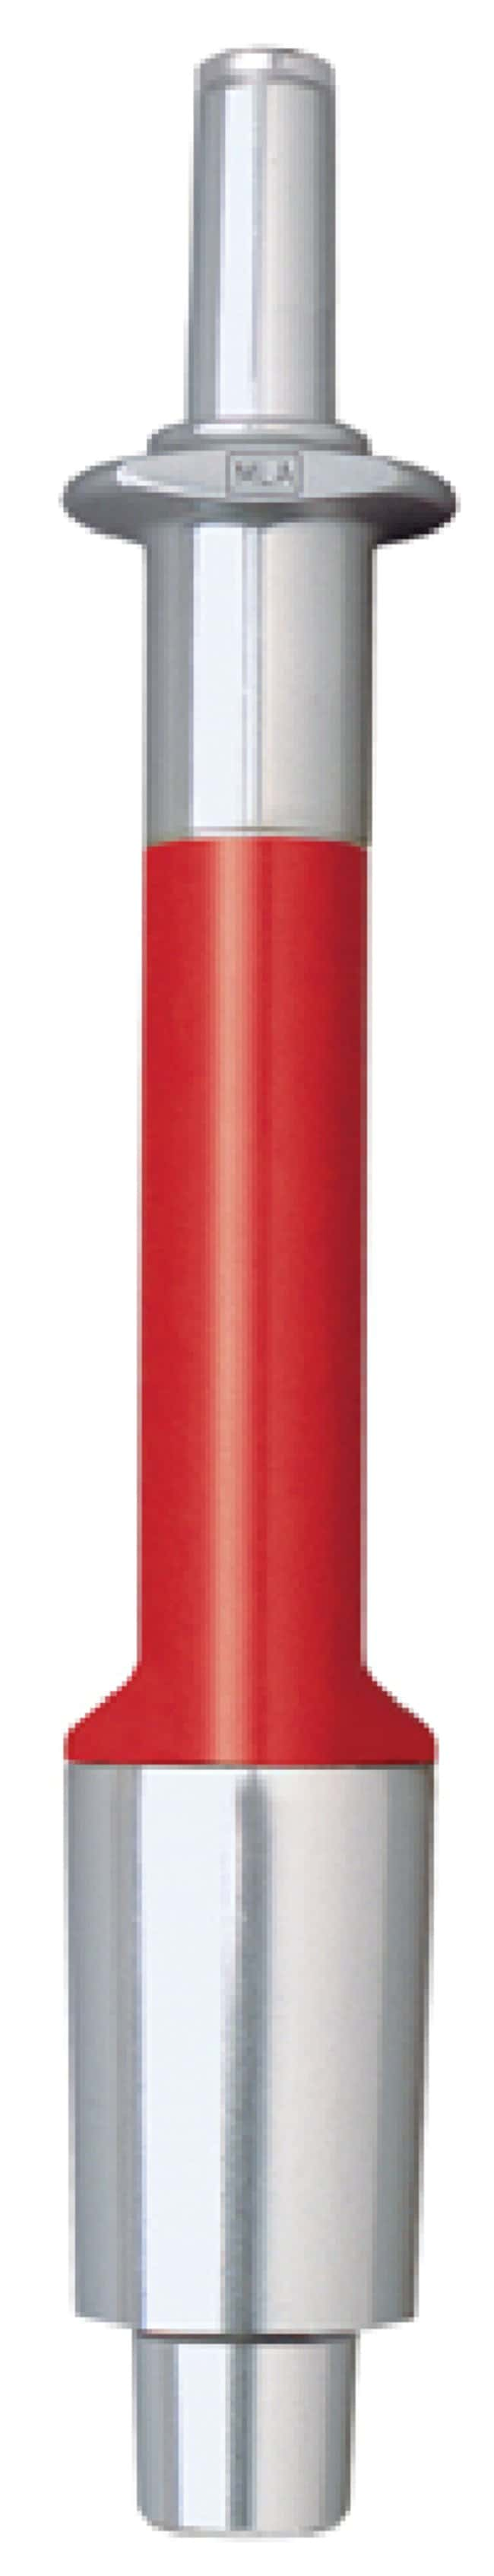 VistaLab™ Technologies MLA™ Brand Macro Pipetters Volume: 9mL; Barrel color: Red VistaLab™ Technologies MLA™ Brand Macro Pipetters